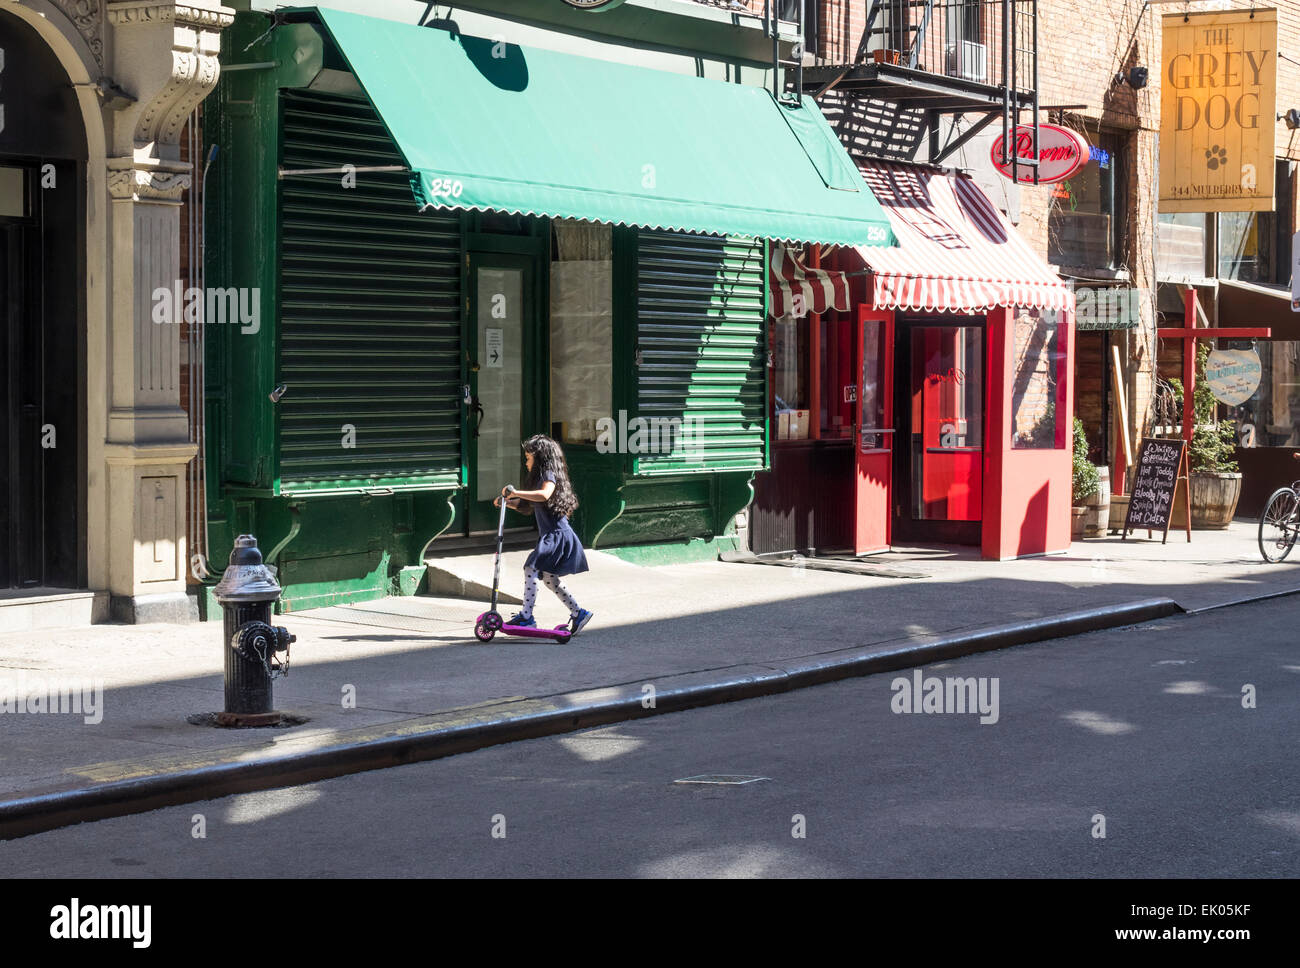 A young girl on a kick or push scooter on Mulberry Street in Nolita in New York City - Stock Image